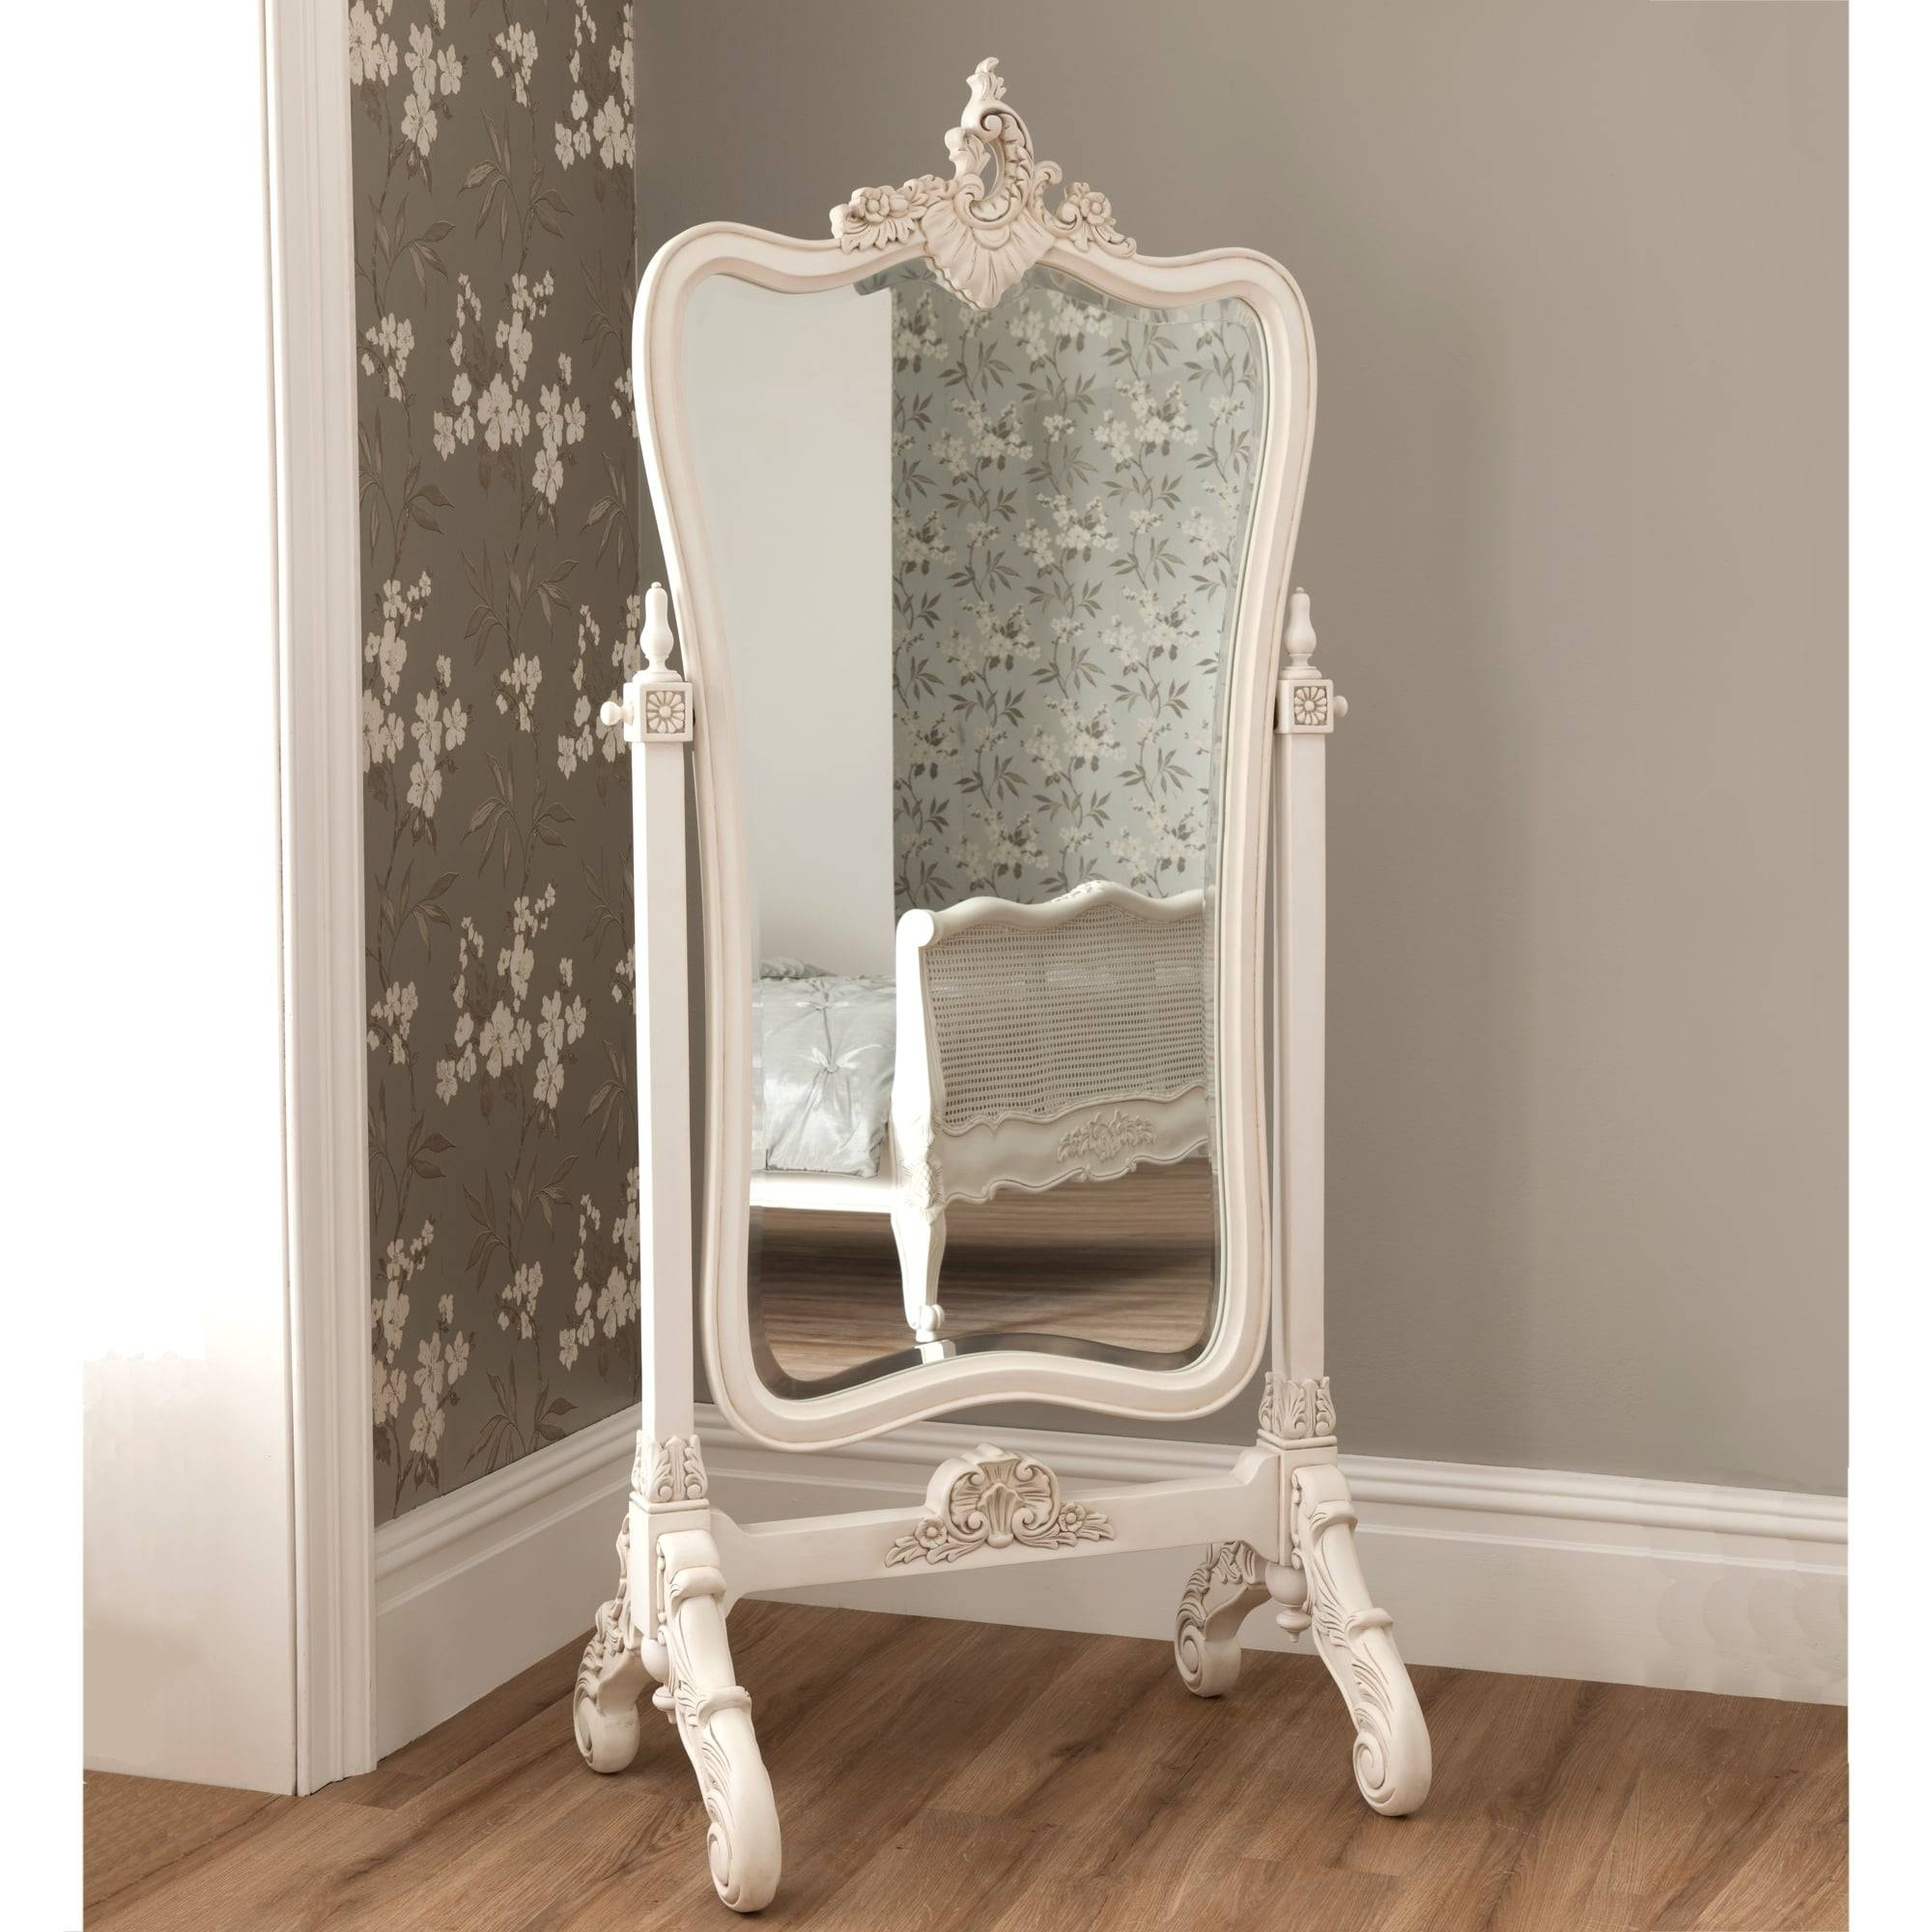 Cheval Mirrors | French Style Mirrors | Shabby Chic Intended For French White Mirrors (View 14 of 15)